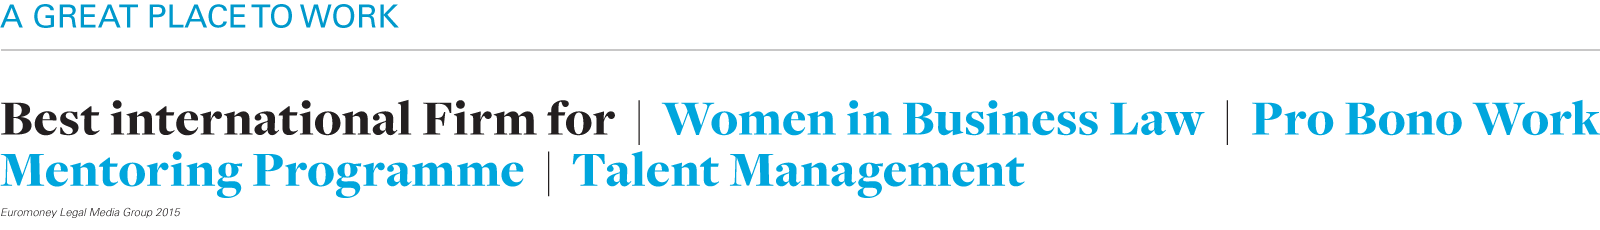 Best international firm: Women in Business Law, Pro Bono, Mentoring, Talent Management (Euromoney 2015)